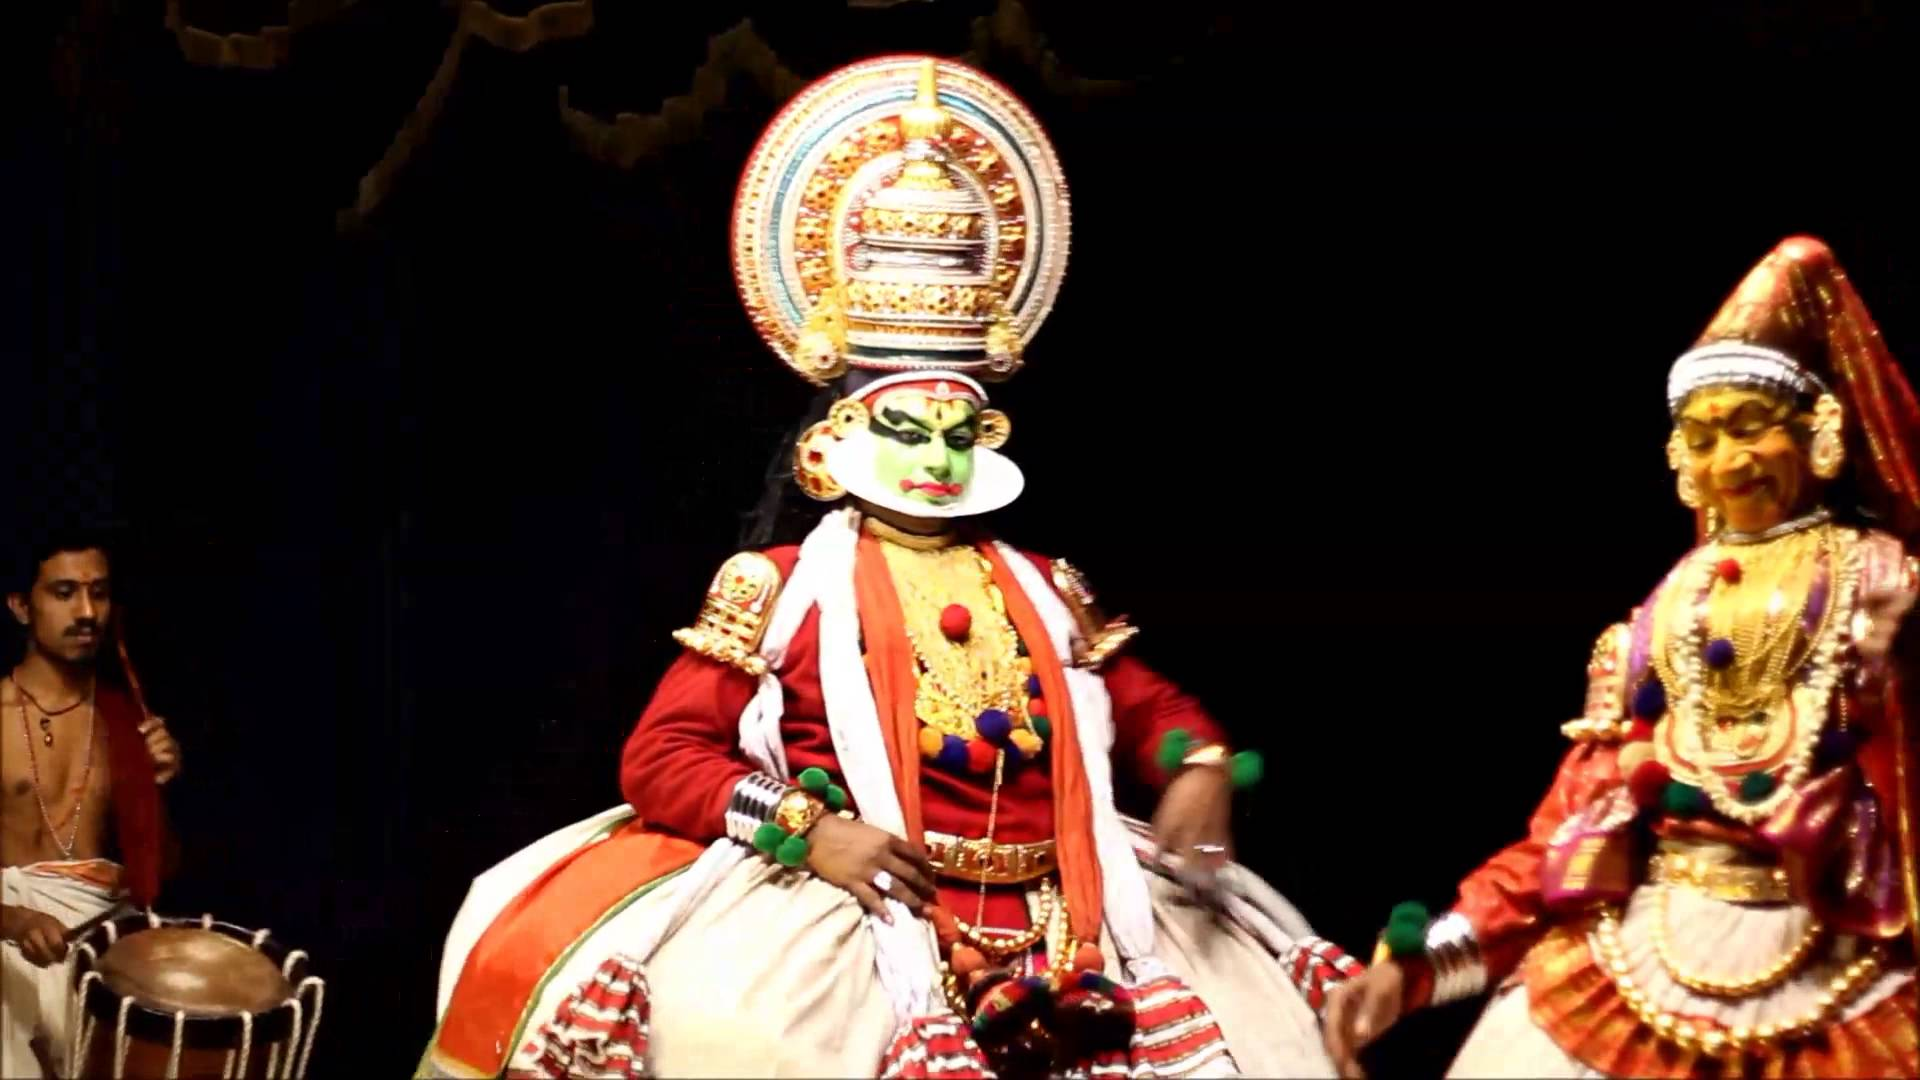 Dances of Kerala- A Video